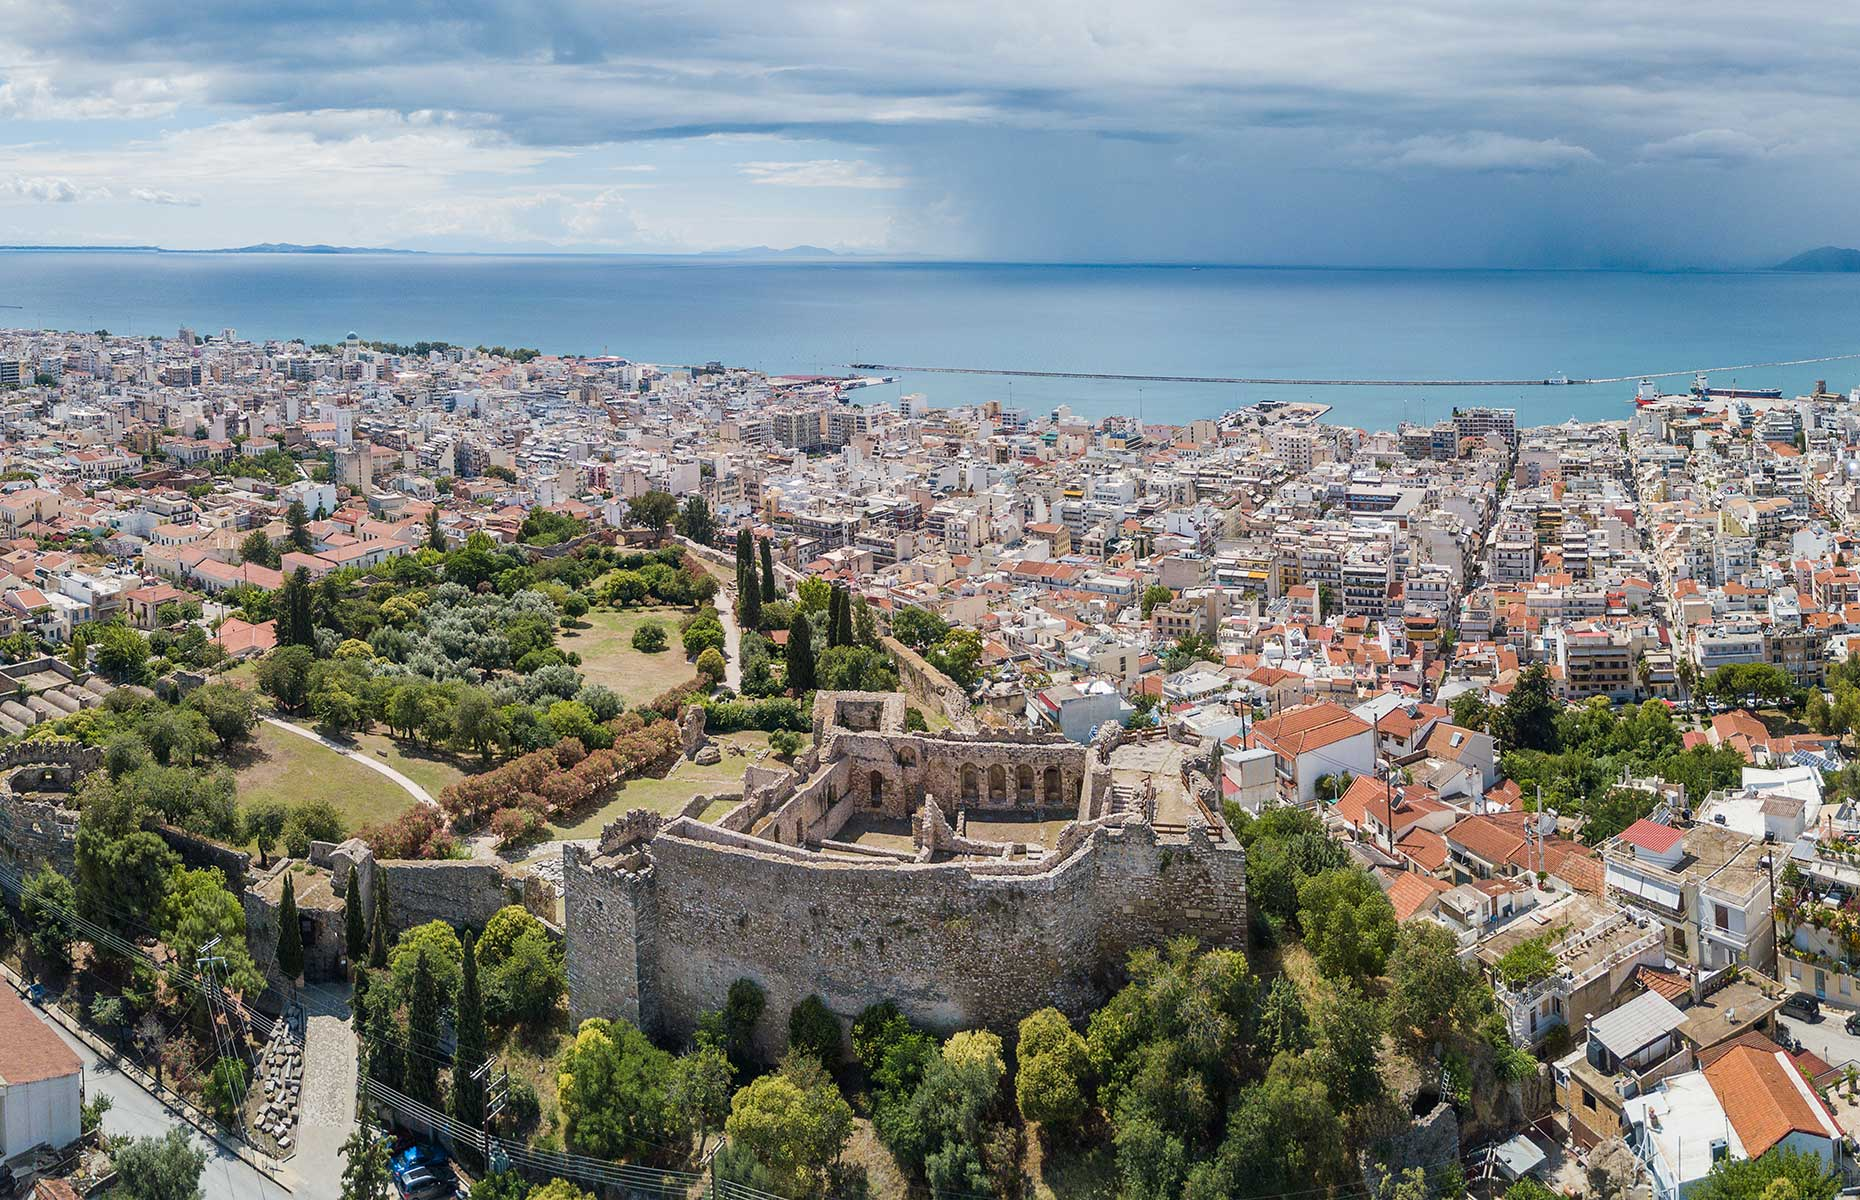 View of Patras, a city in the Peloponnese, Greece (Image: Max Topchii/Shutterstock)